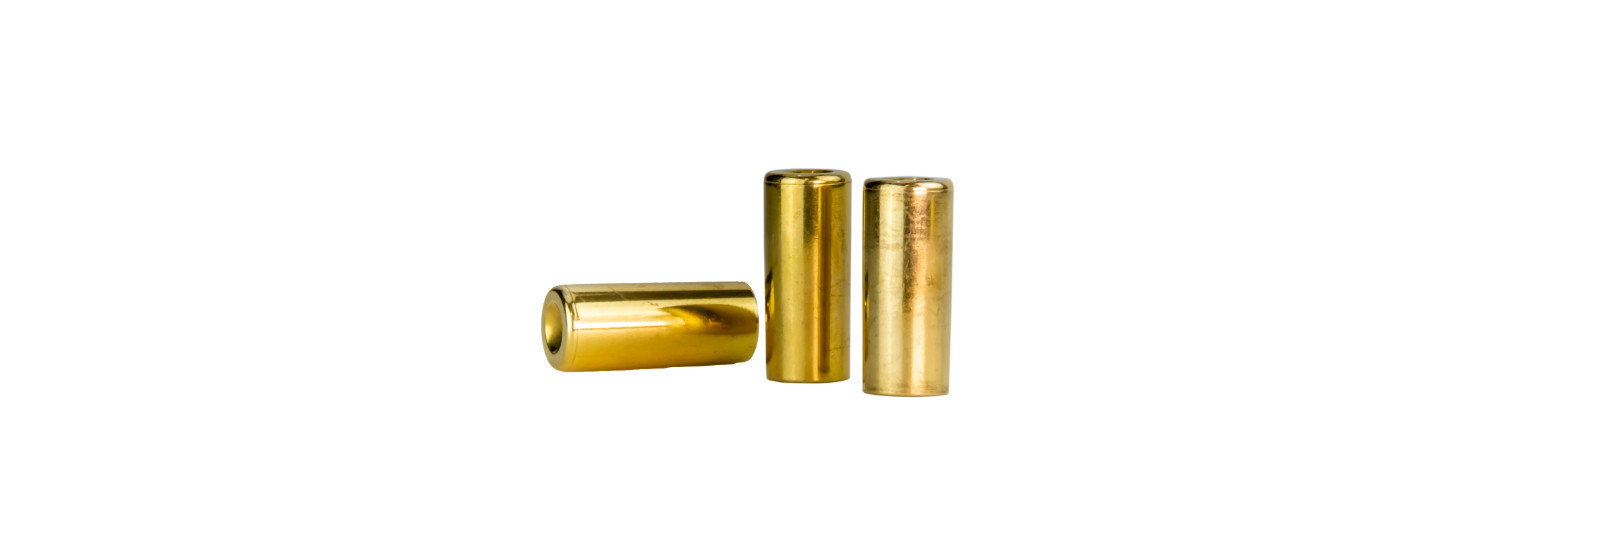 10 modern brass cases bag .54